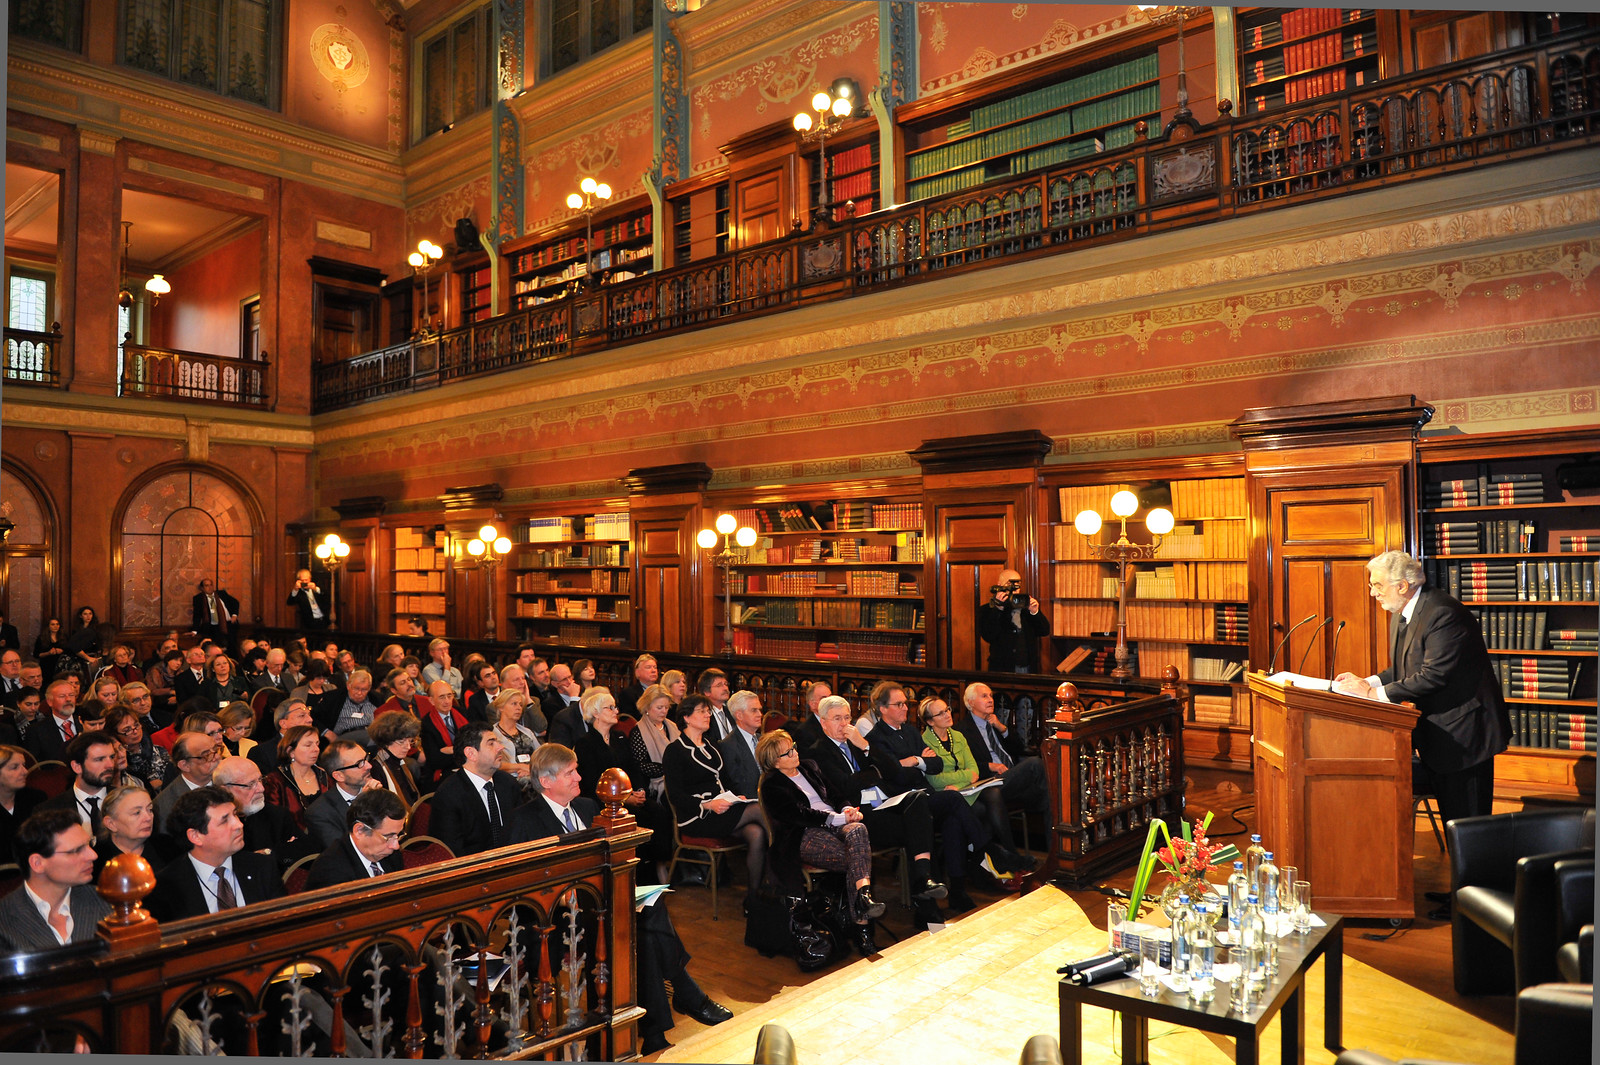 Policy Conference 'Cultural Heritage for Europe, Europe for Cultural Heritage'